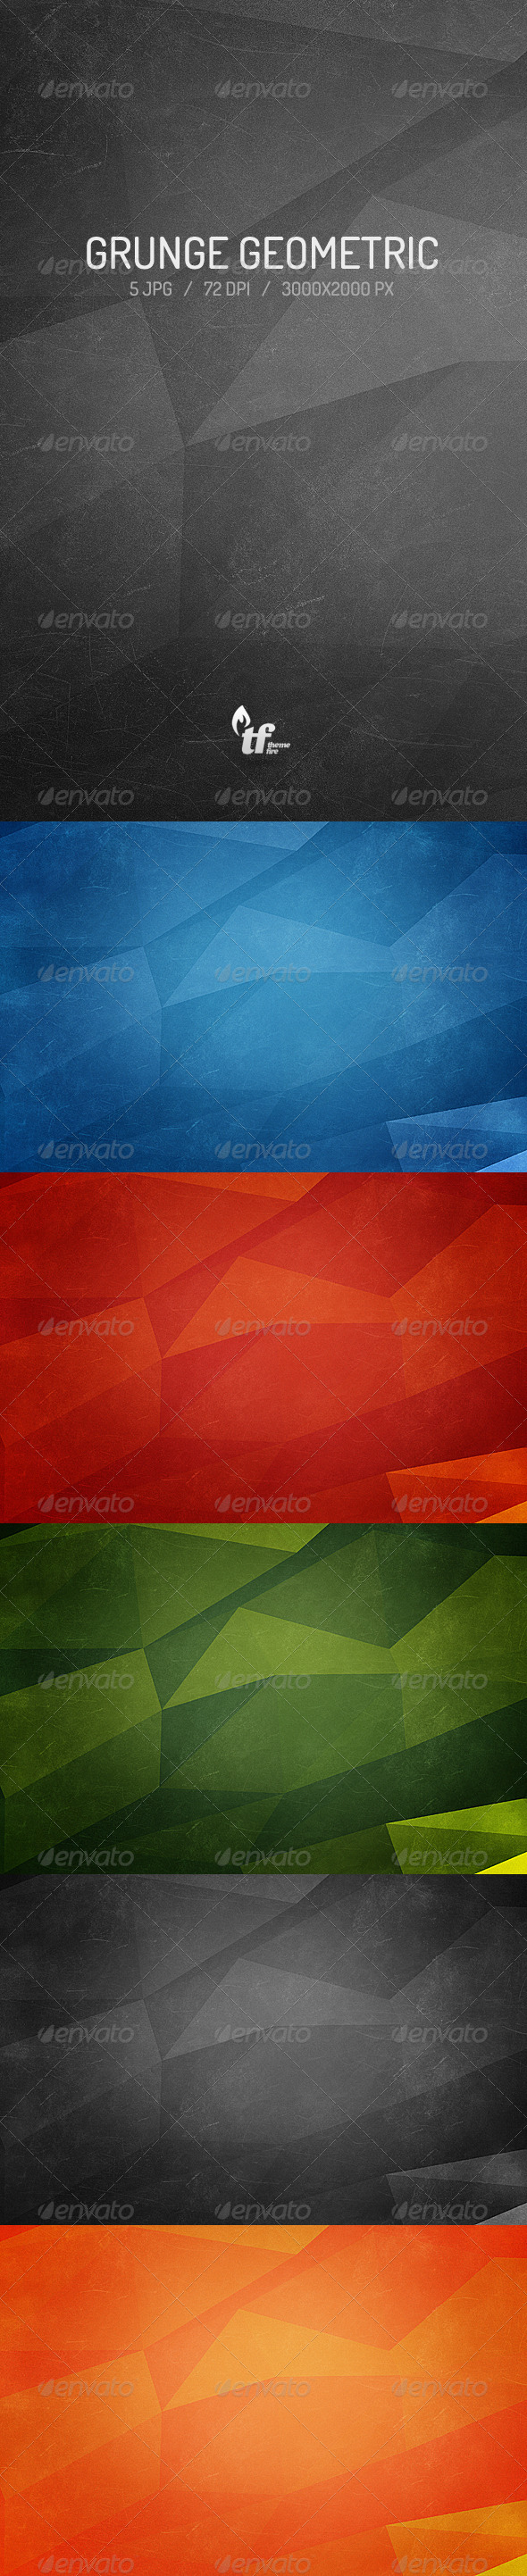 Grunge Geometric Backgrounds - Backgrounds Graphics